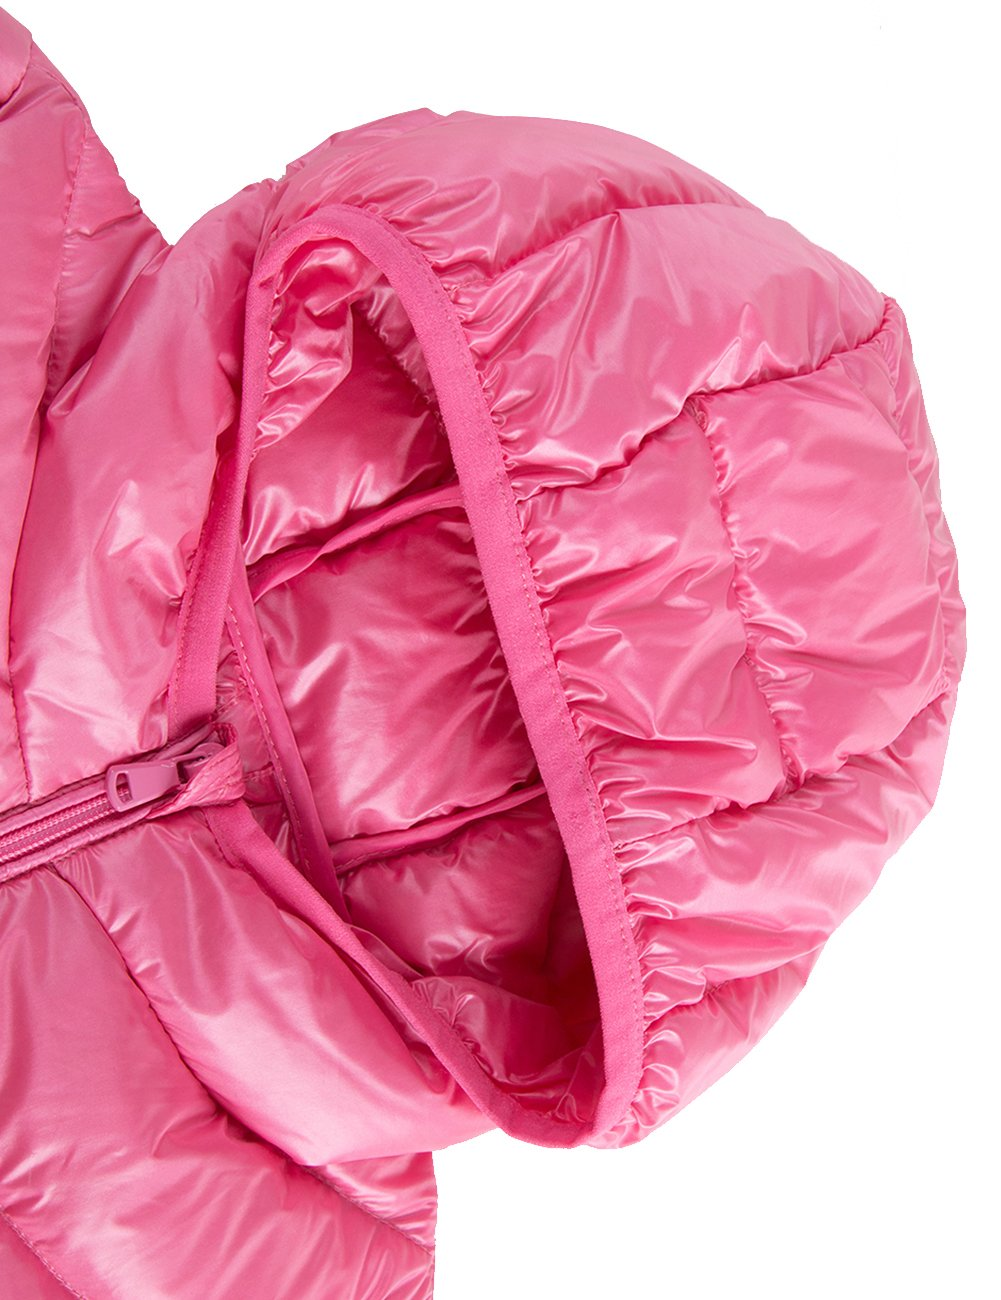 Spring&Gege Boys' Quilted Packable Hoodie Lightweight Puffer Jacket Windproof Outwear Children Warm Duck Down Coat for Boys and Girls Size 7-8 Years Pink by Spring&Gege (Image #6)